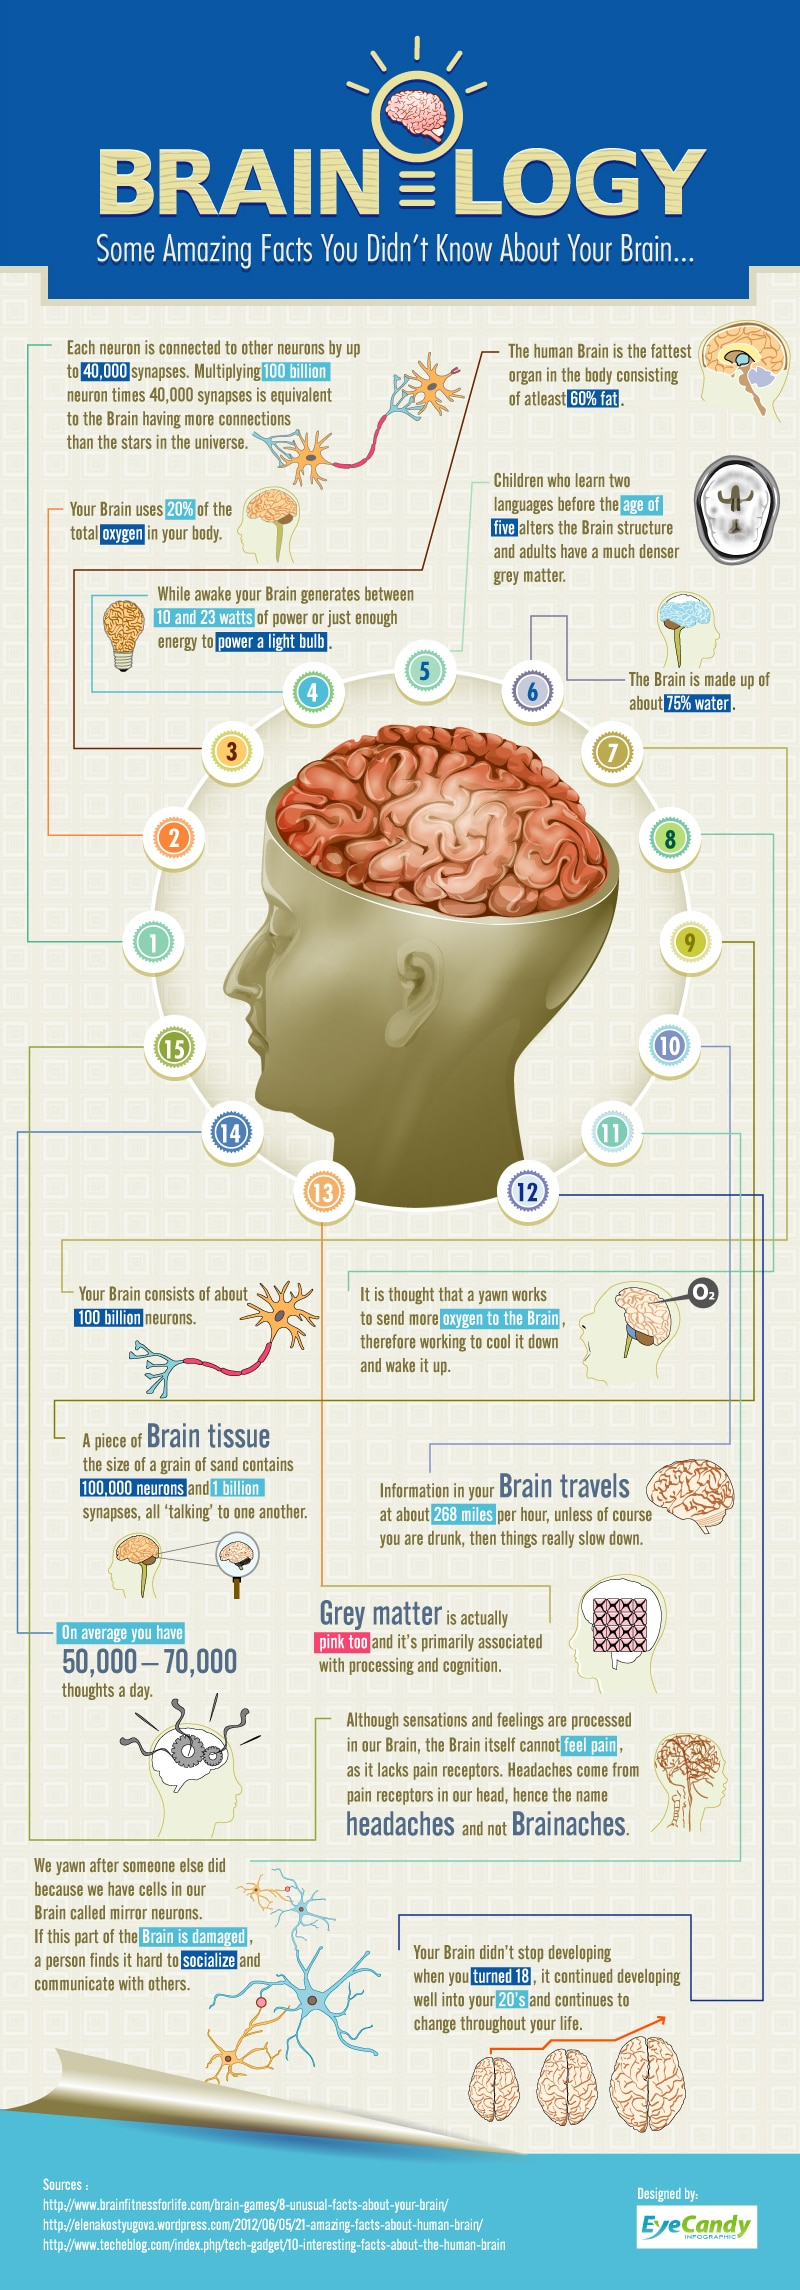 Brainology: 15 Intriguing Facts About Your Brain [Infographic]